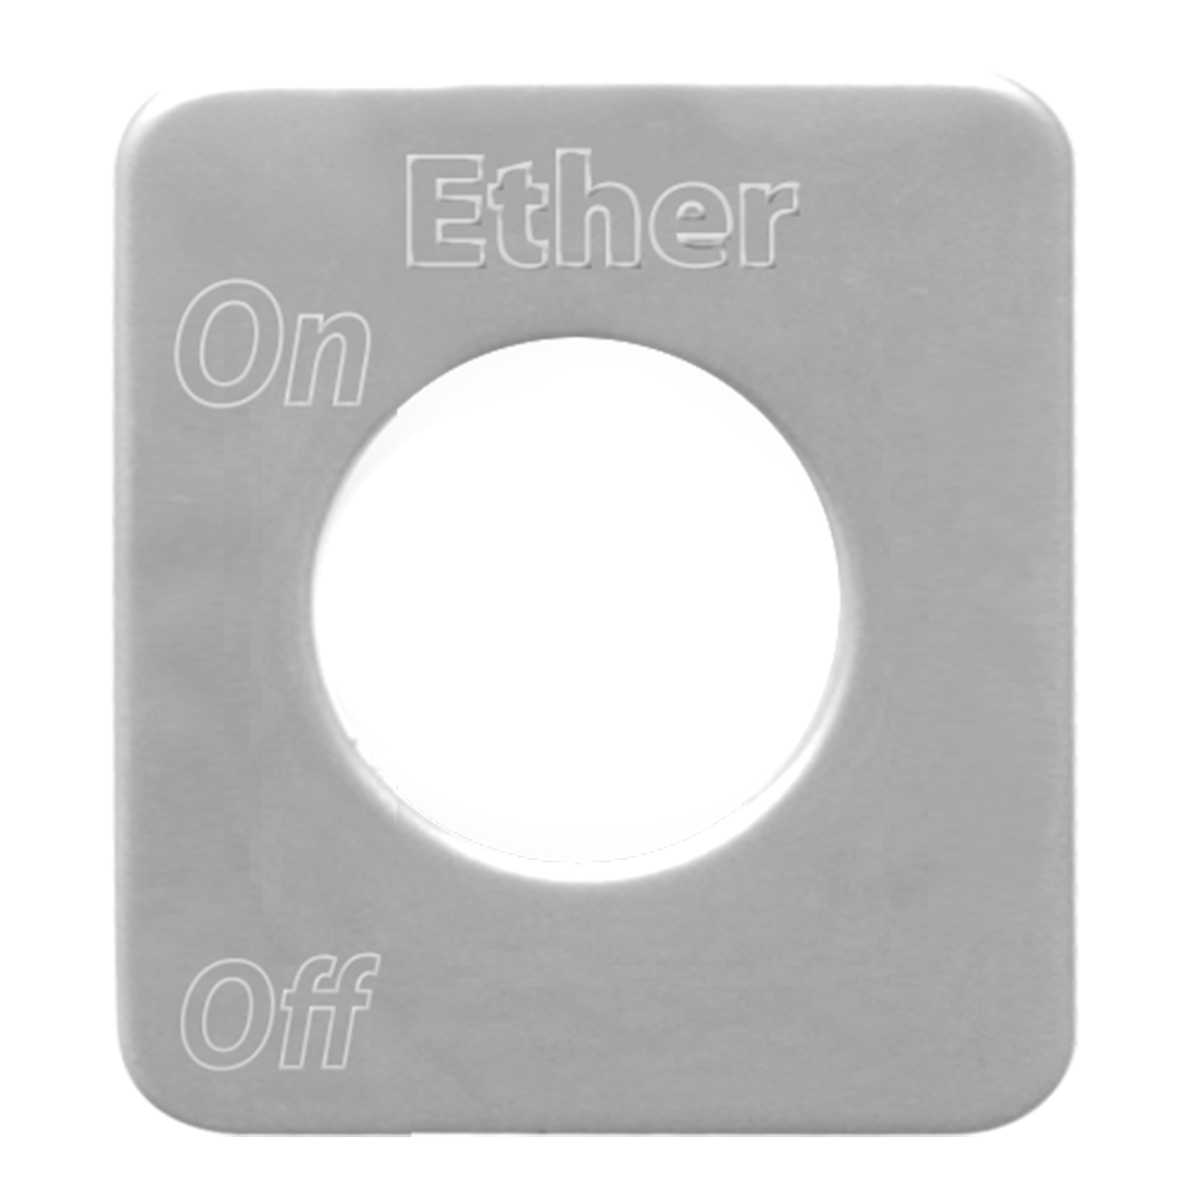 68536 Stainless Steel Ether Switch Plate for KW